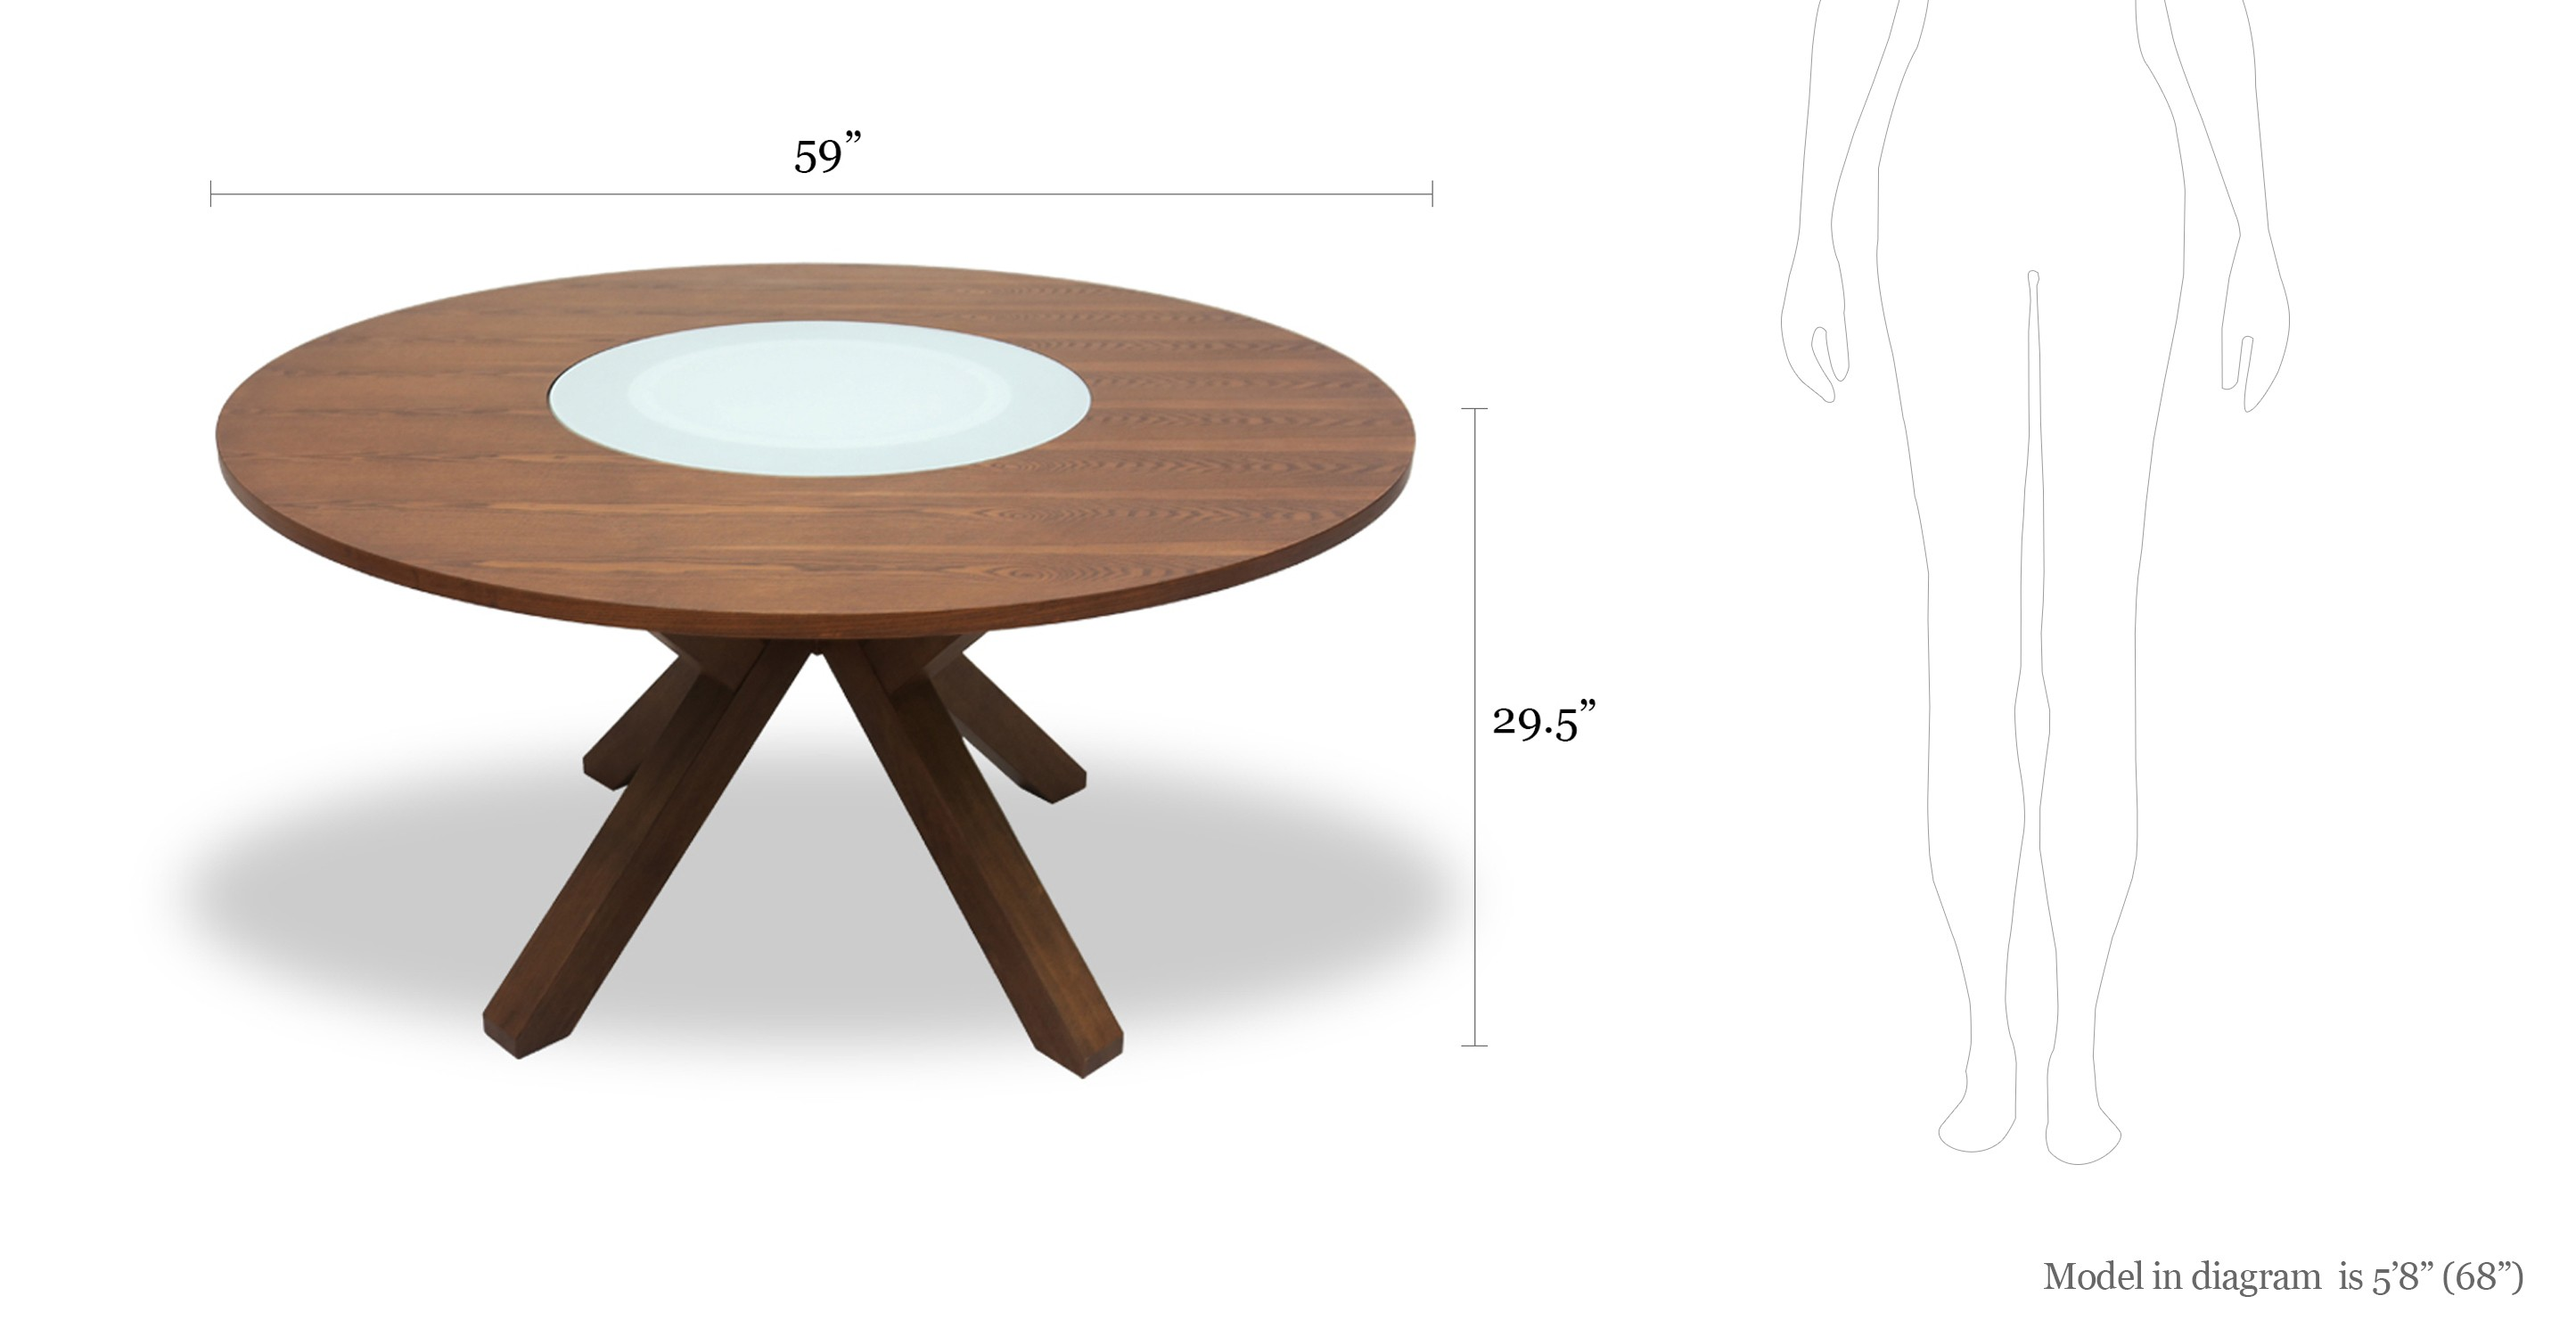 Clifford Lazy Susan Round Dining Table Glass Tables  : image5910 from www.bryght.com size 2890 x 1500 jpeg 165kB